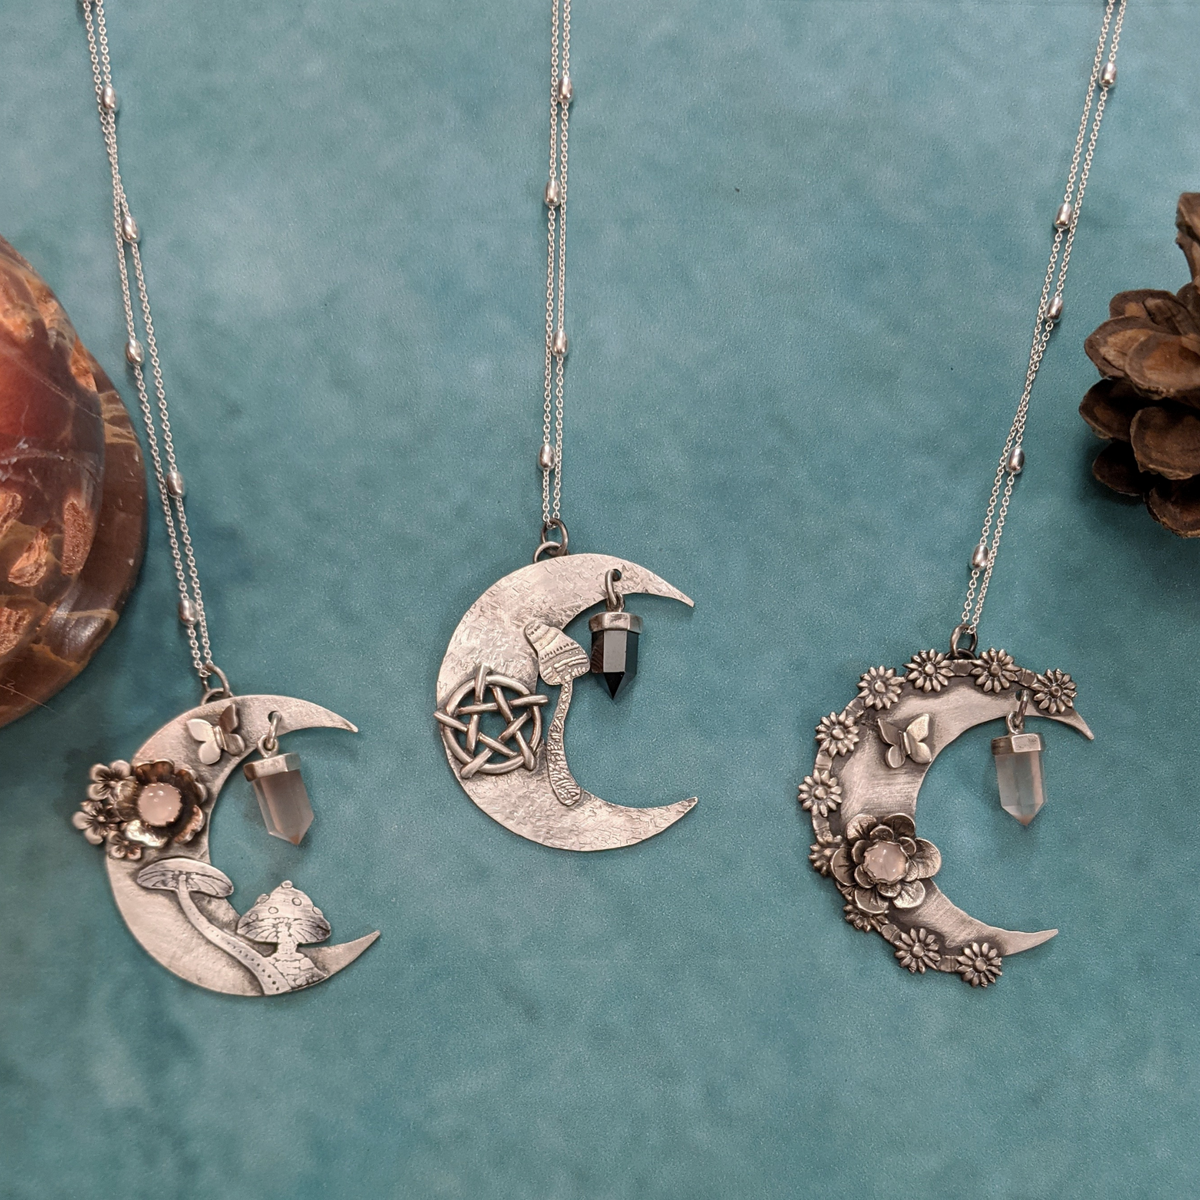 Crescent Moon Necklace with Rose Quartz and Mushrooms